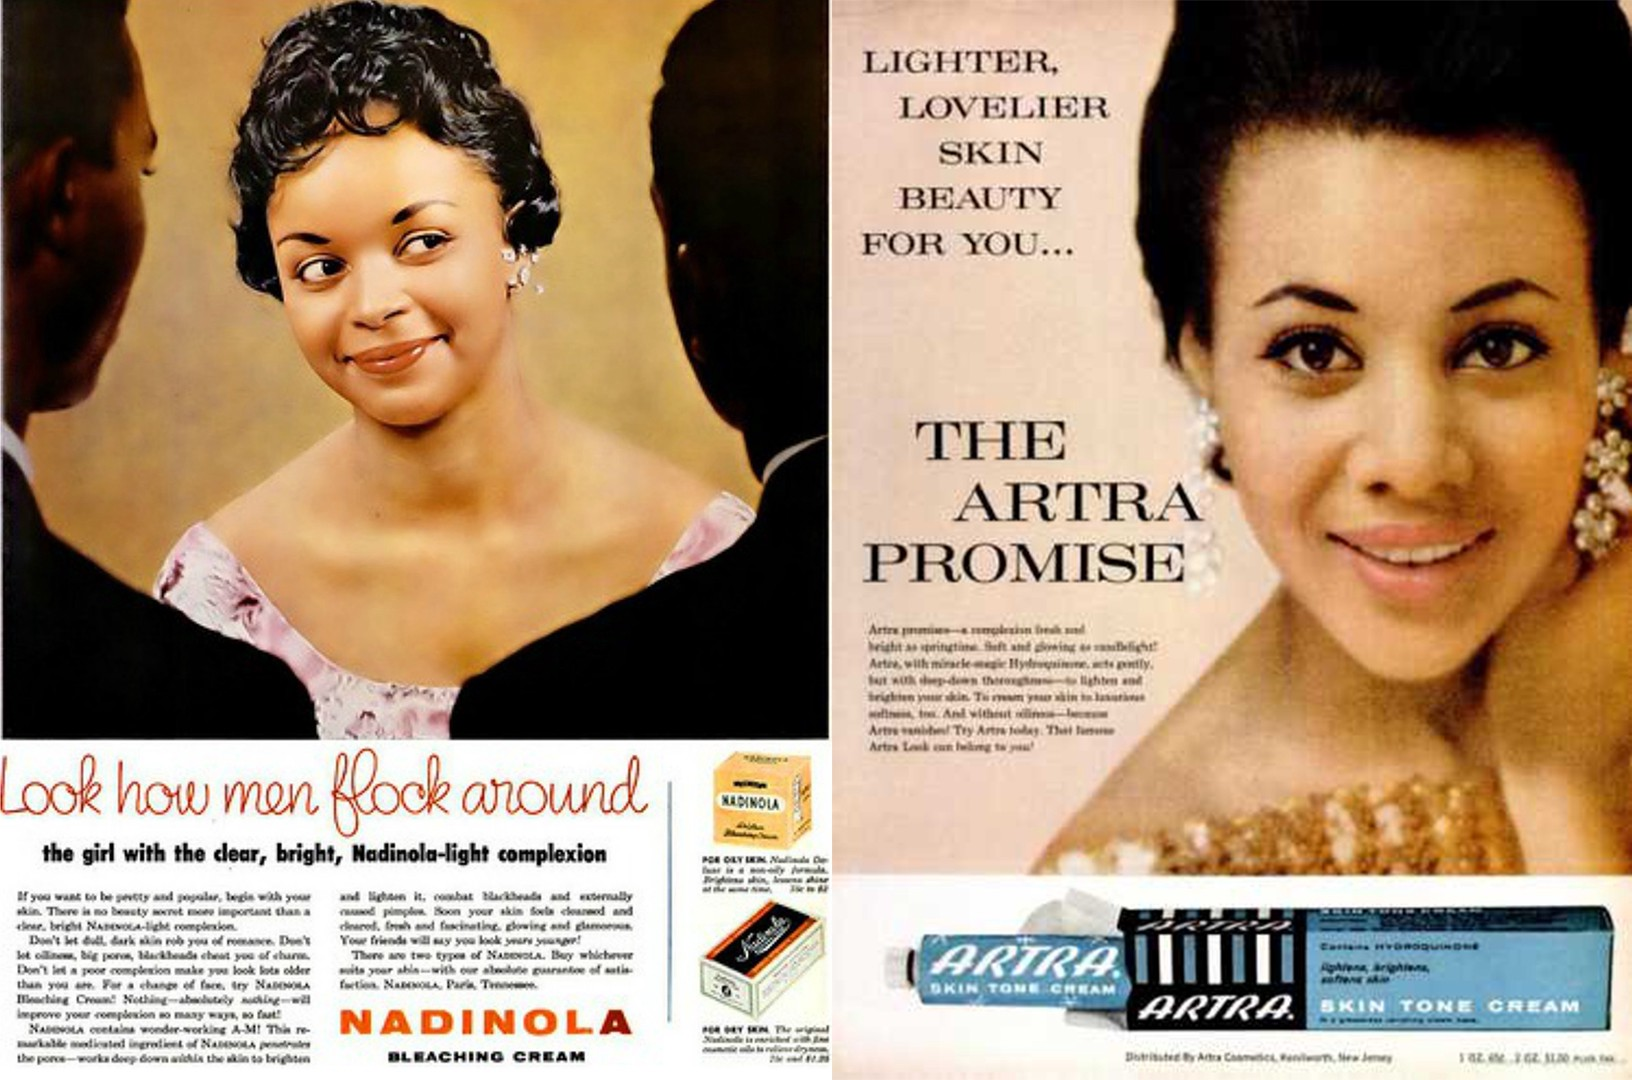 (Left) Image of a vintage advert for Nadinola Bleaching Cream, (Right) Artra skin tone cream advert in Ebony magazine 1963.